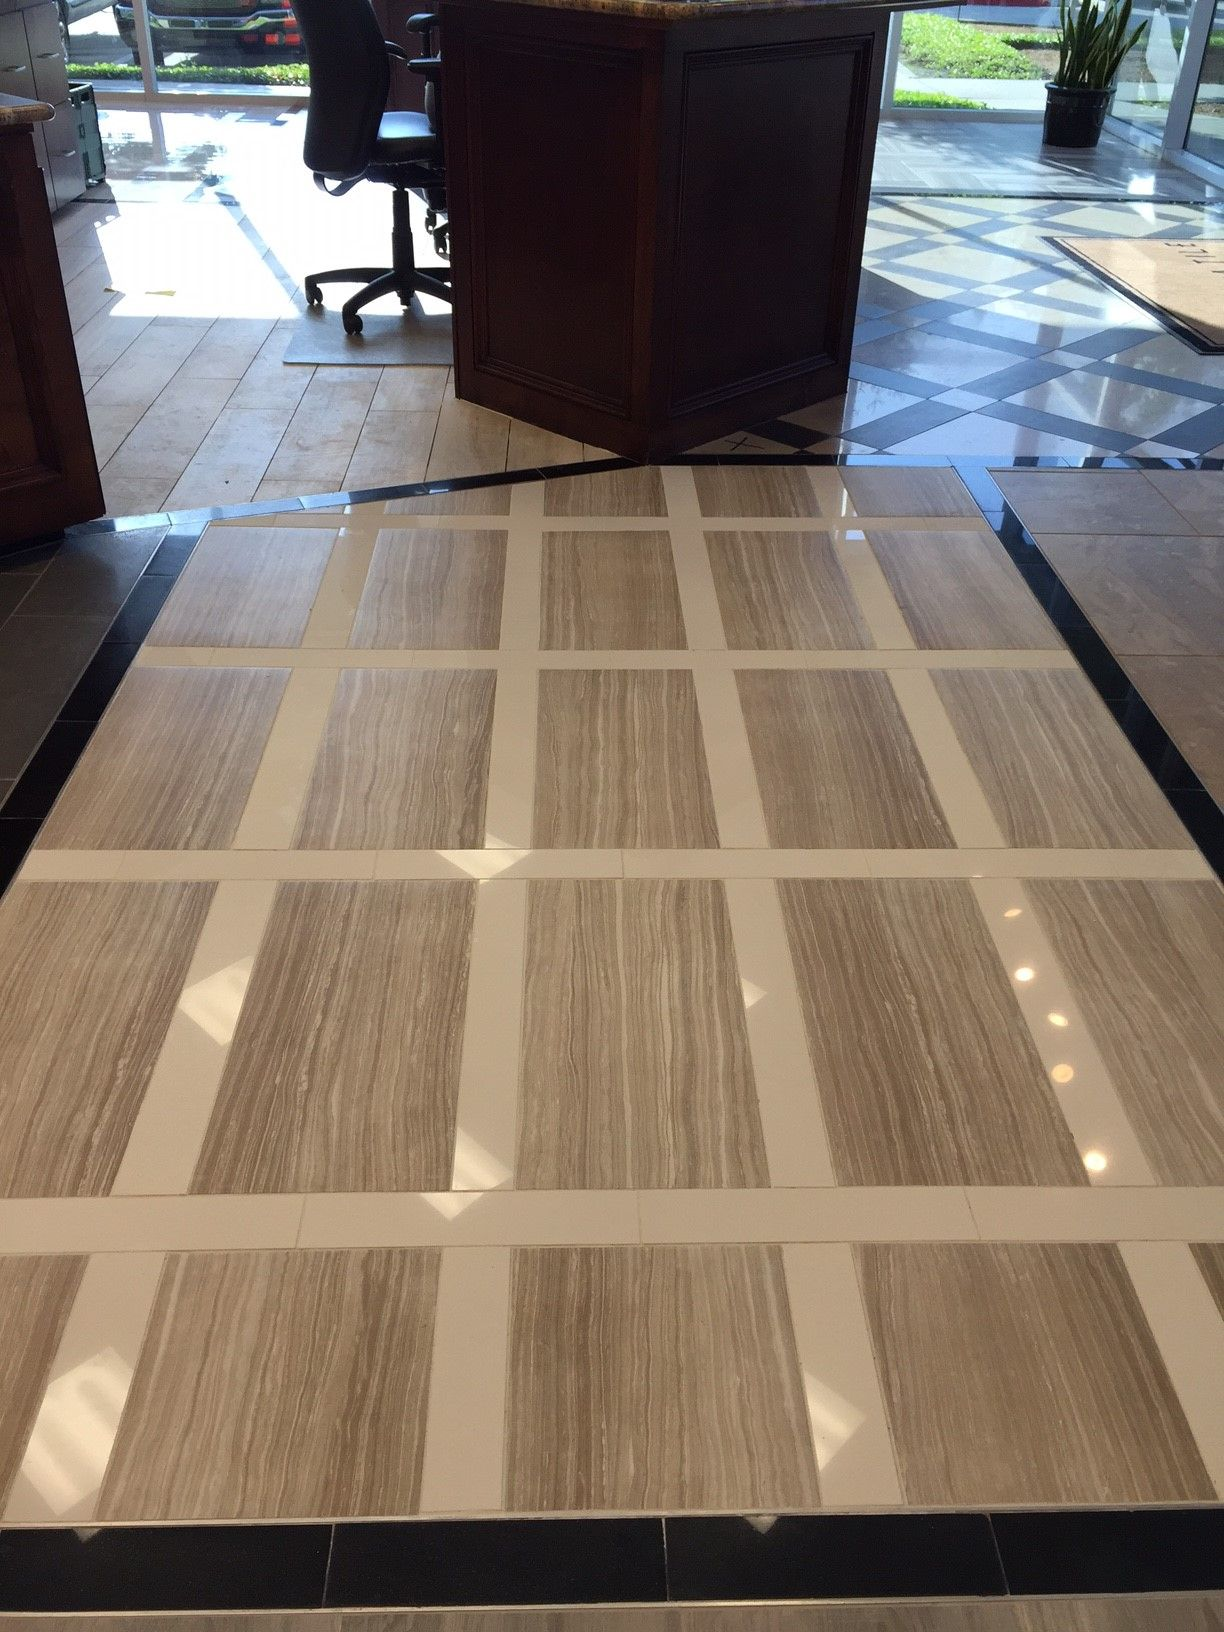 Another new install in our dallas showroom two porcelain tiles another new install in our dallas showroom two porcelain tiles eramosa and pearl white dailygadgetfo Gallery